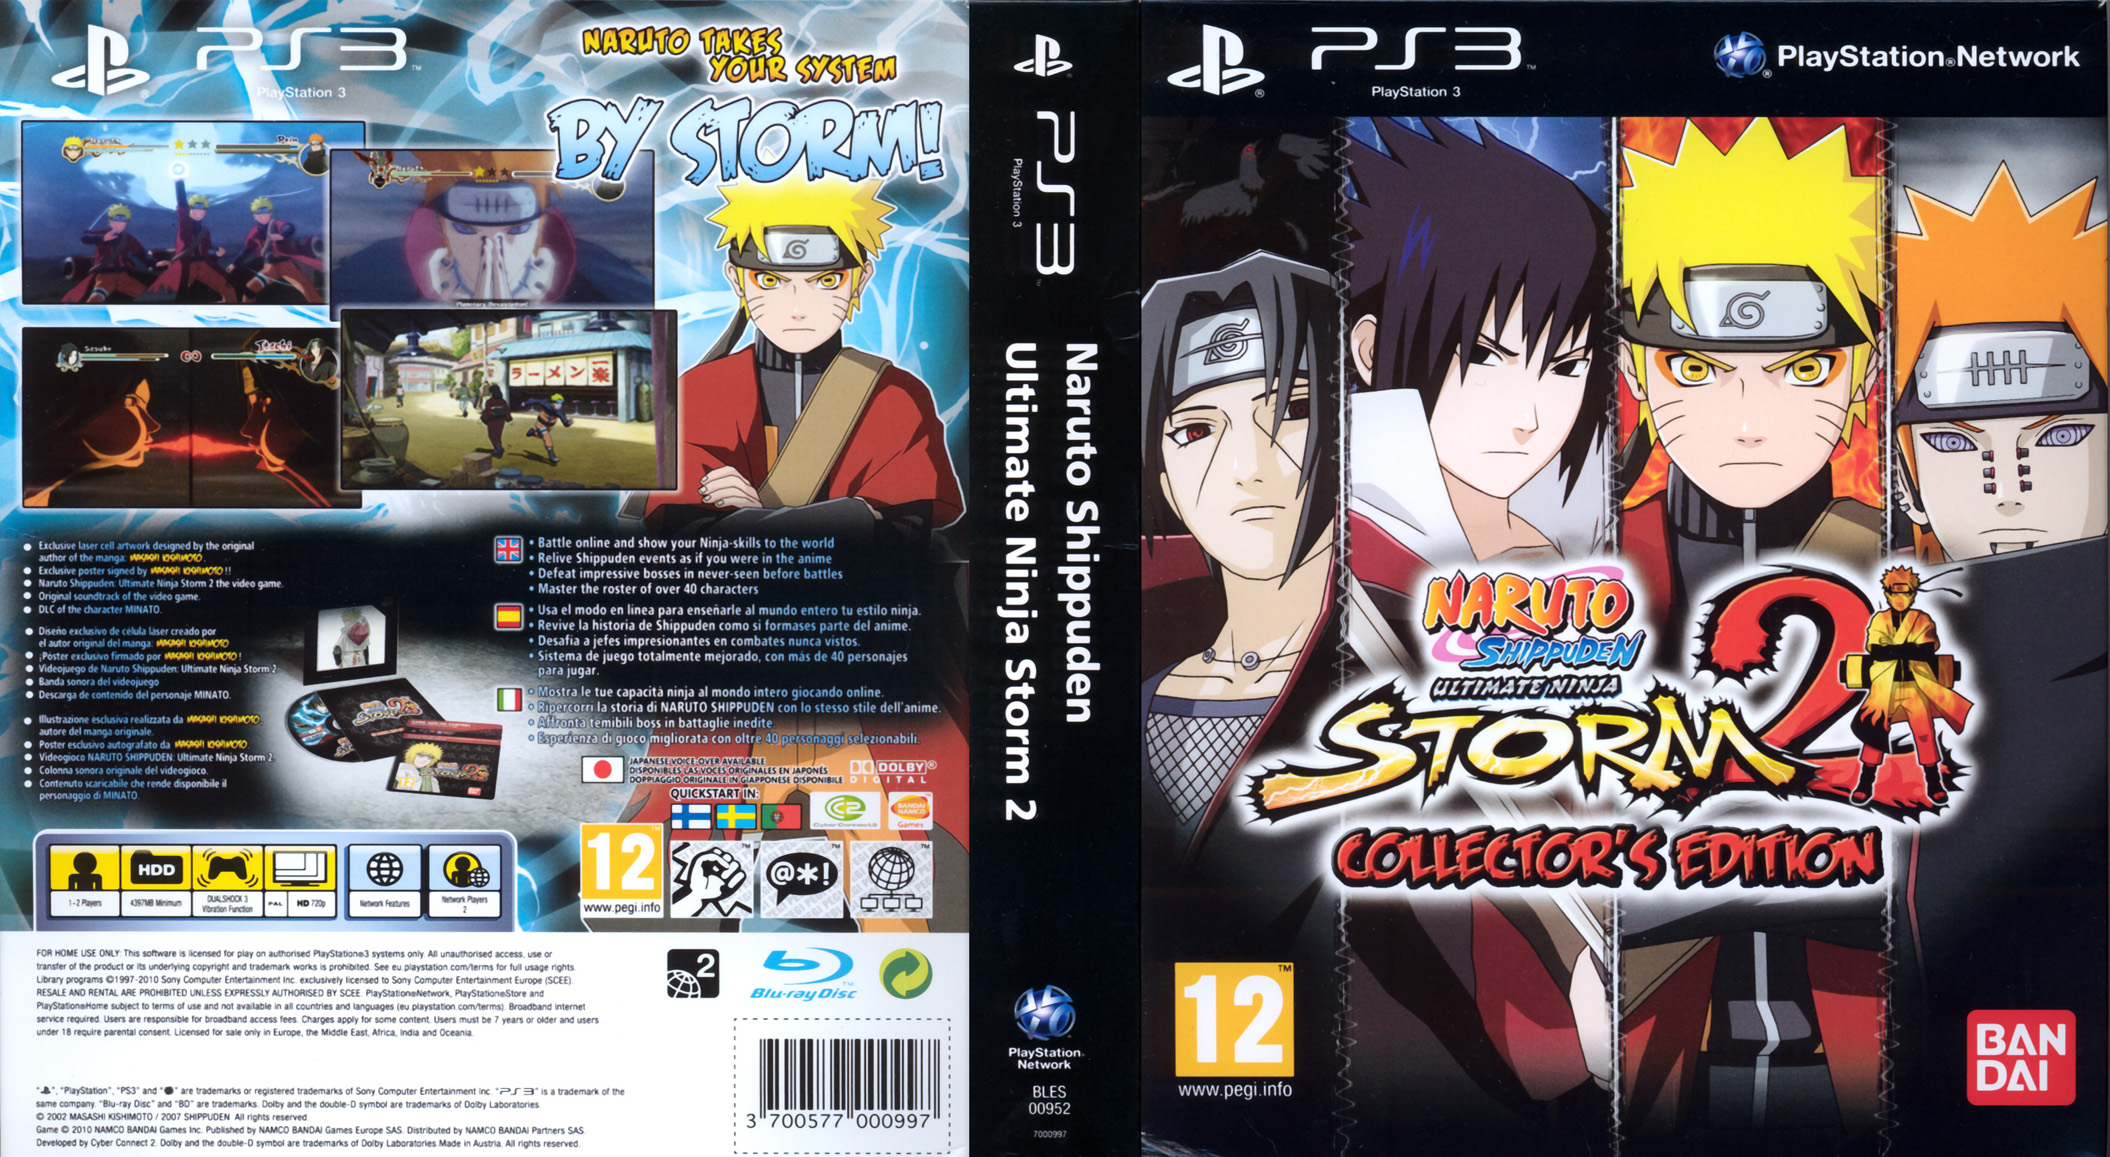 PASSION TÉLÉCHARGER VF NARUTO SHIPPUDEN PSP